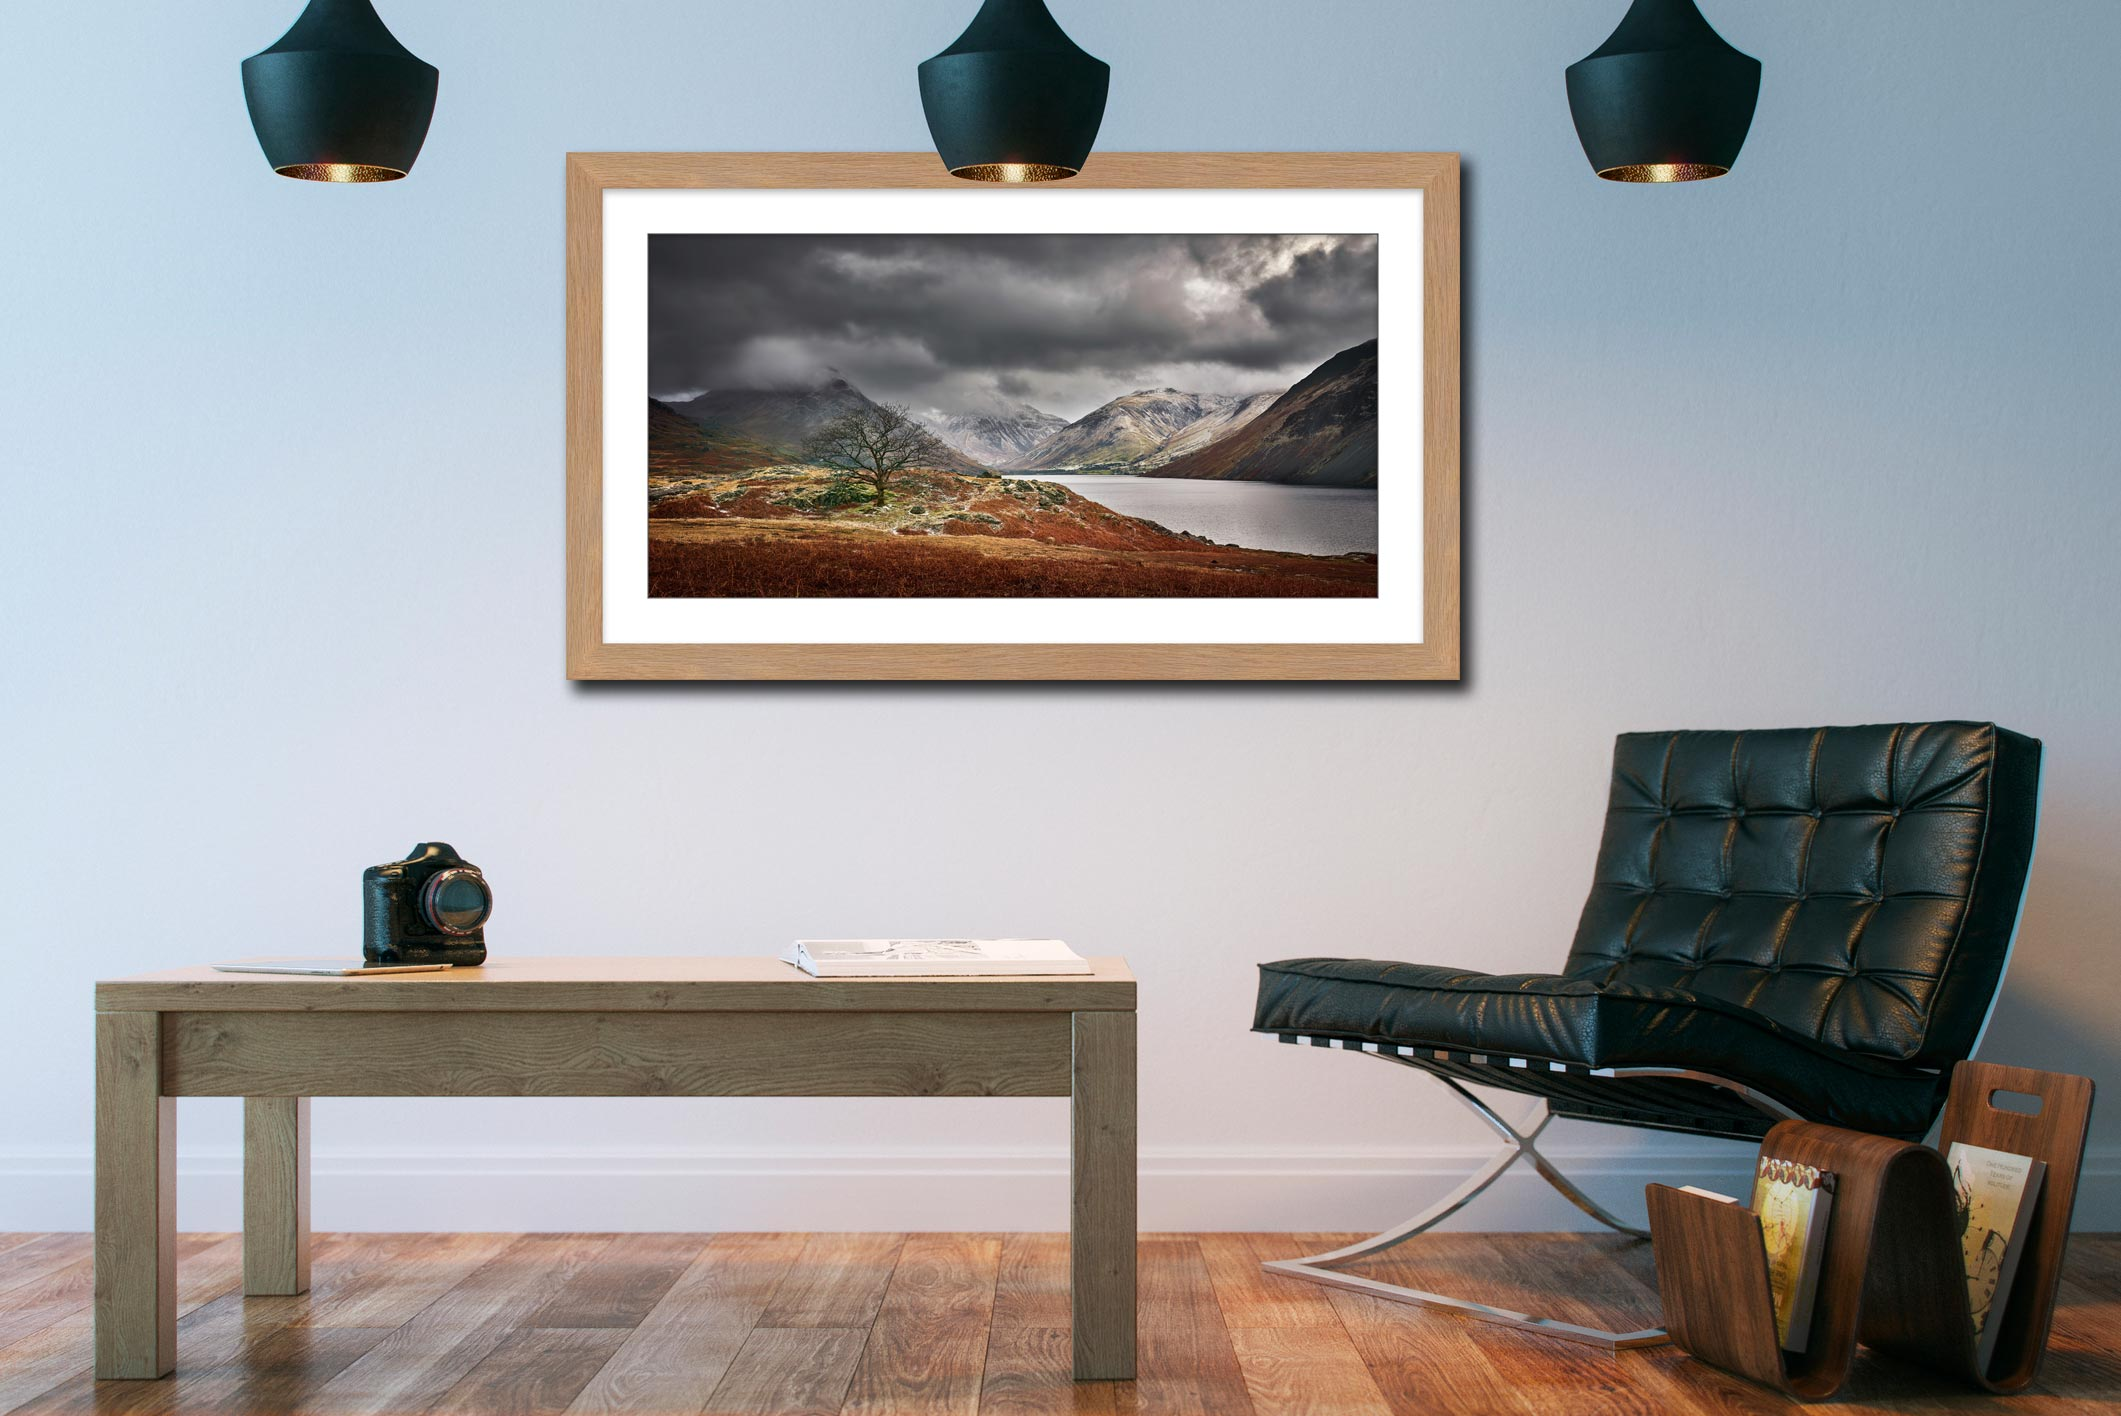 Winter Colours of Wast Water - Framed Print with Mount on Wall